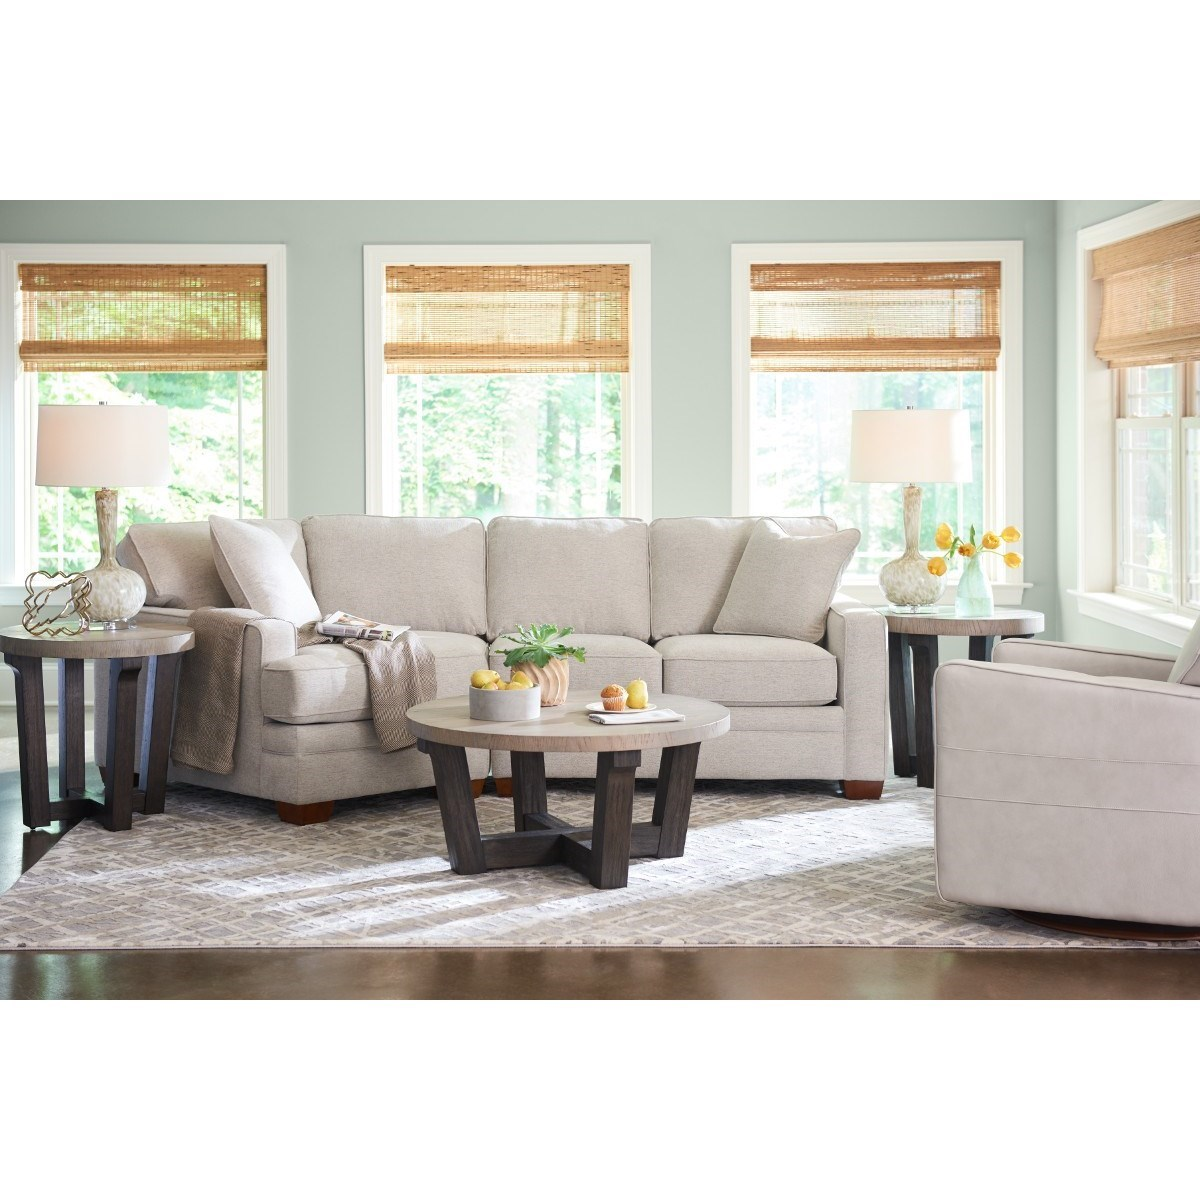 Contemporary 2-Piece Sectional with Right-Sitting Cuddler